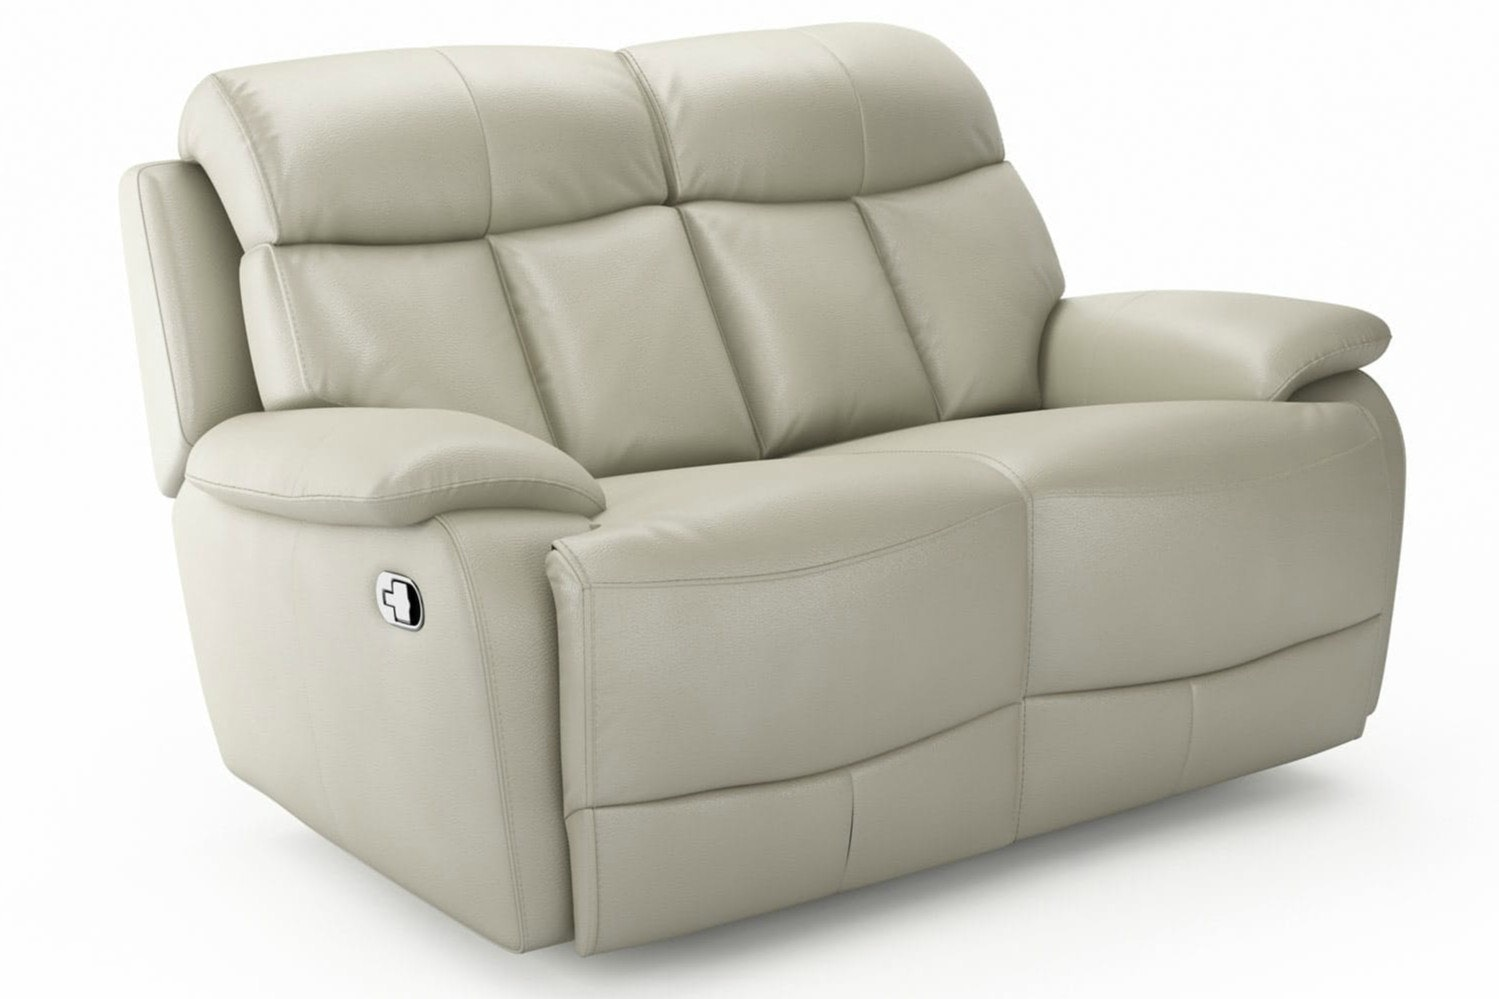 Seline 2 Seater Leather Recliner Sofa